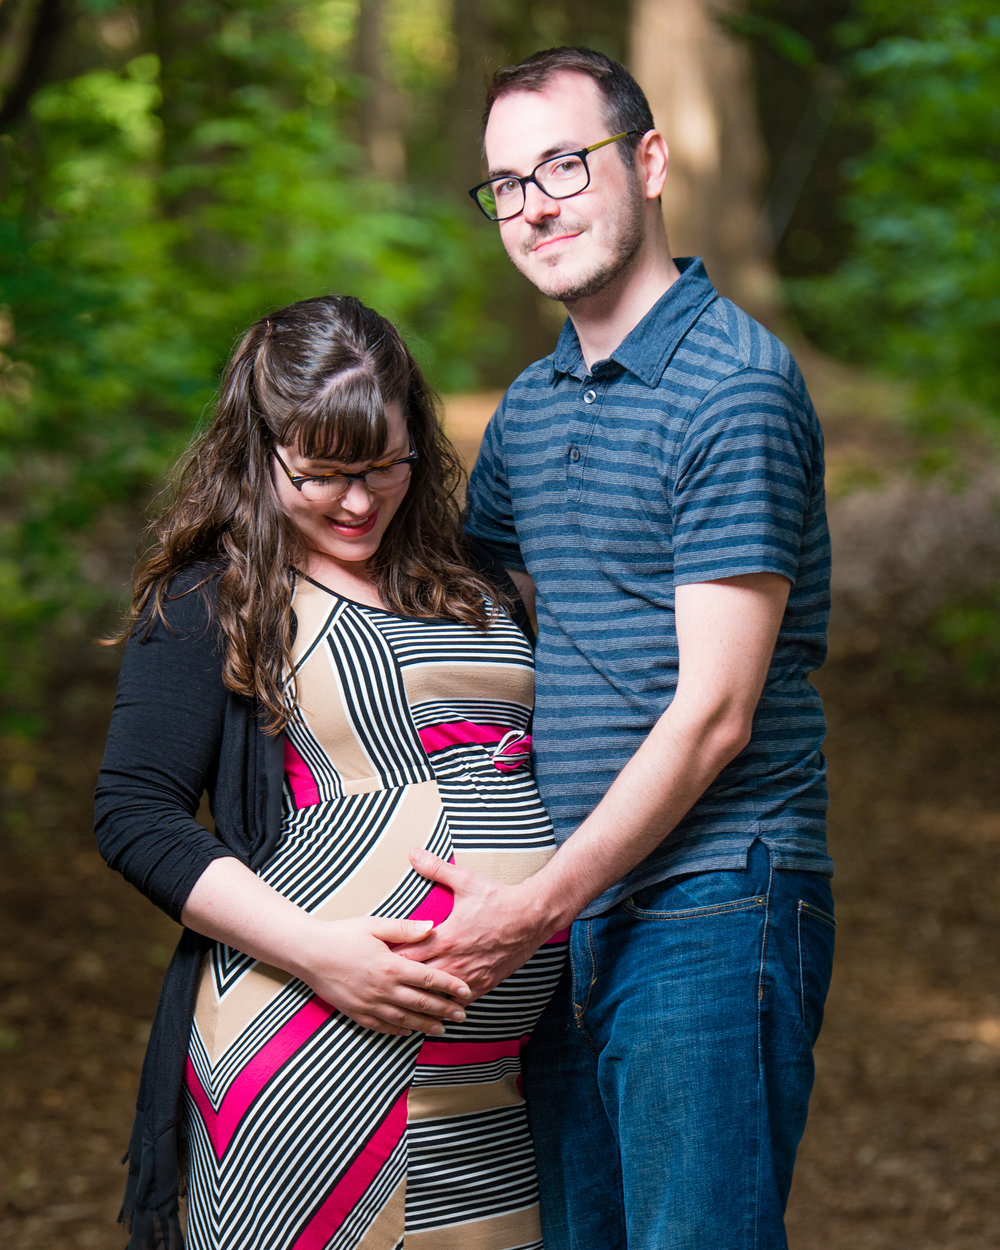 2018_June_23-06_23_2018_Ben_Anna_Maternity-48844-Edit.jpg